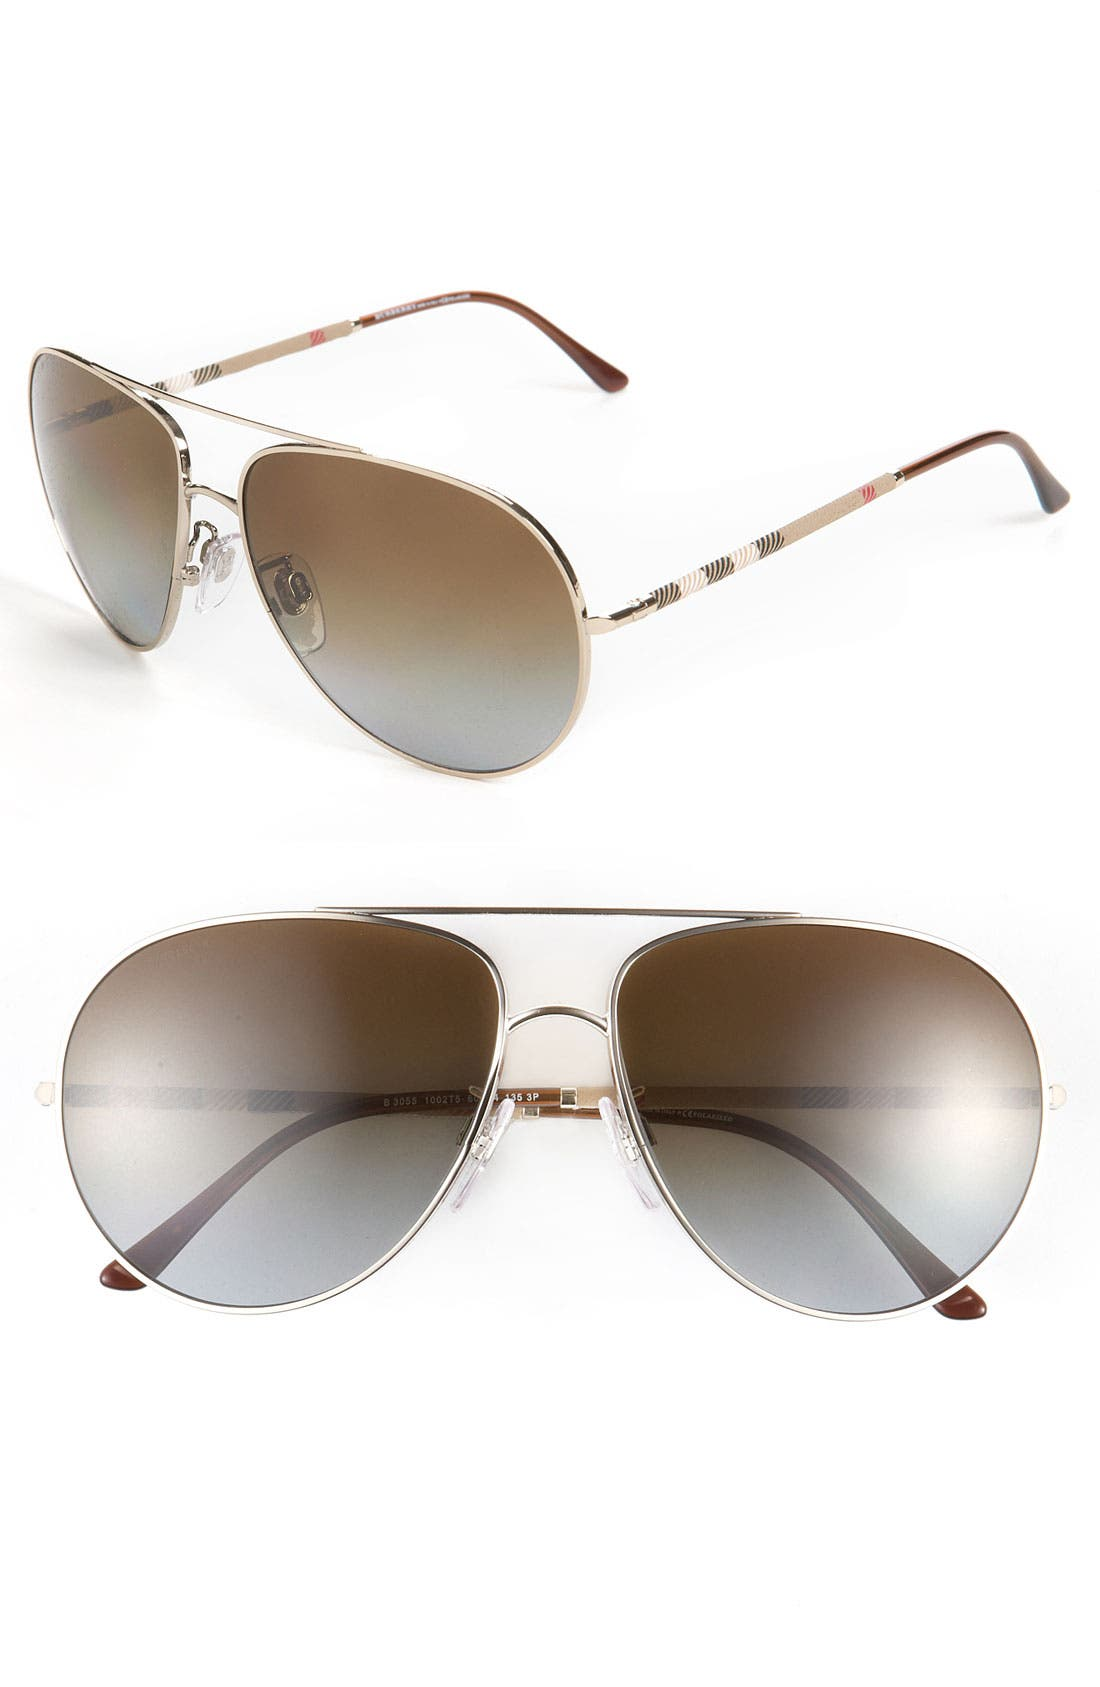 Main Image - Burberry Polarized Aviator Sunglasses